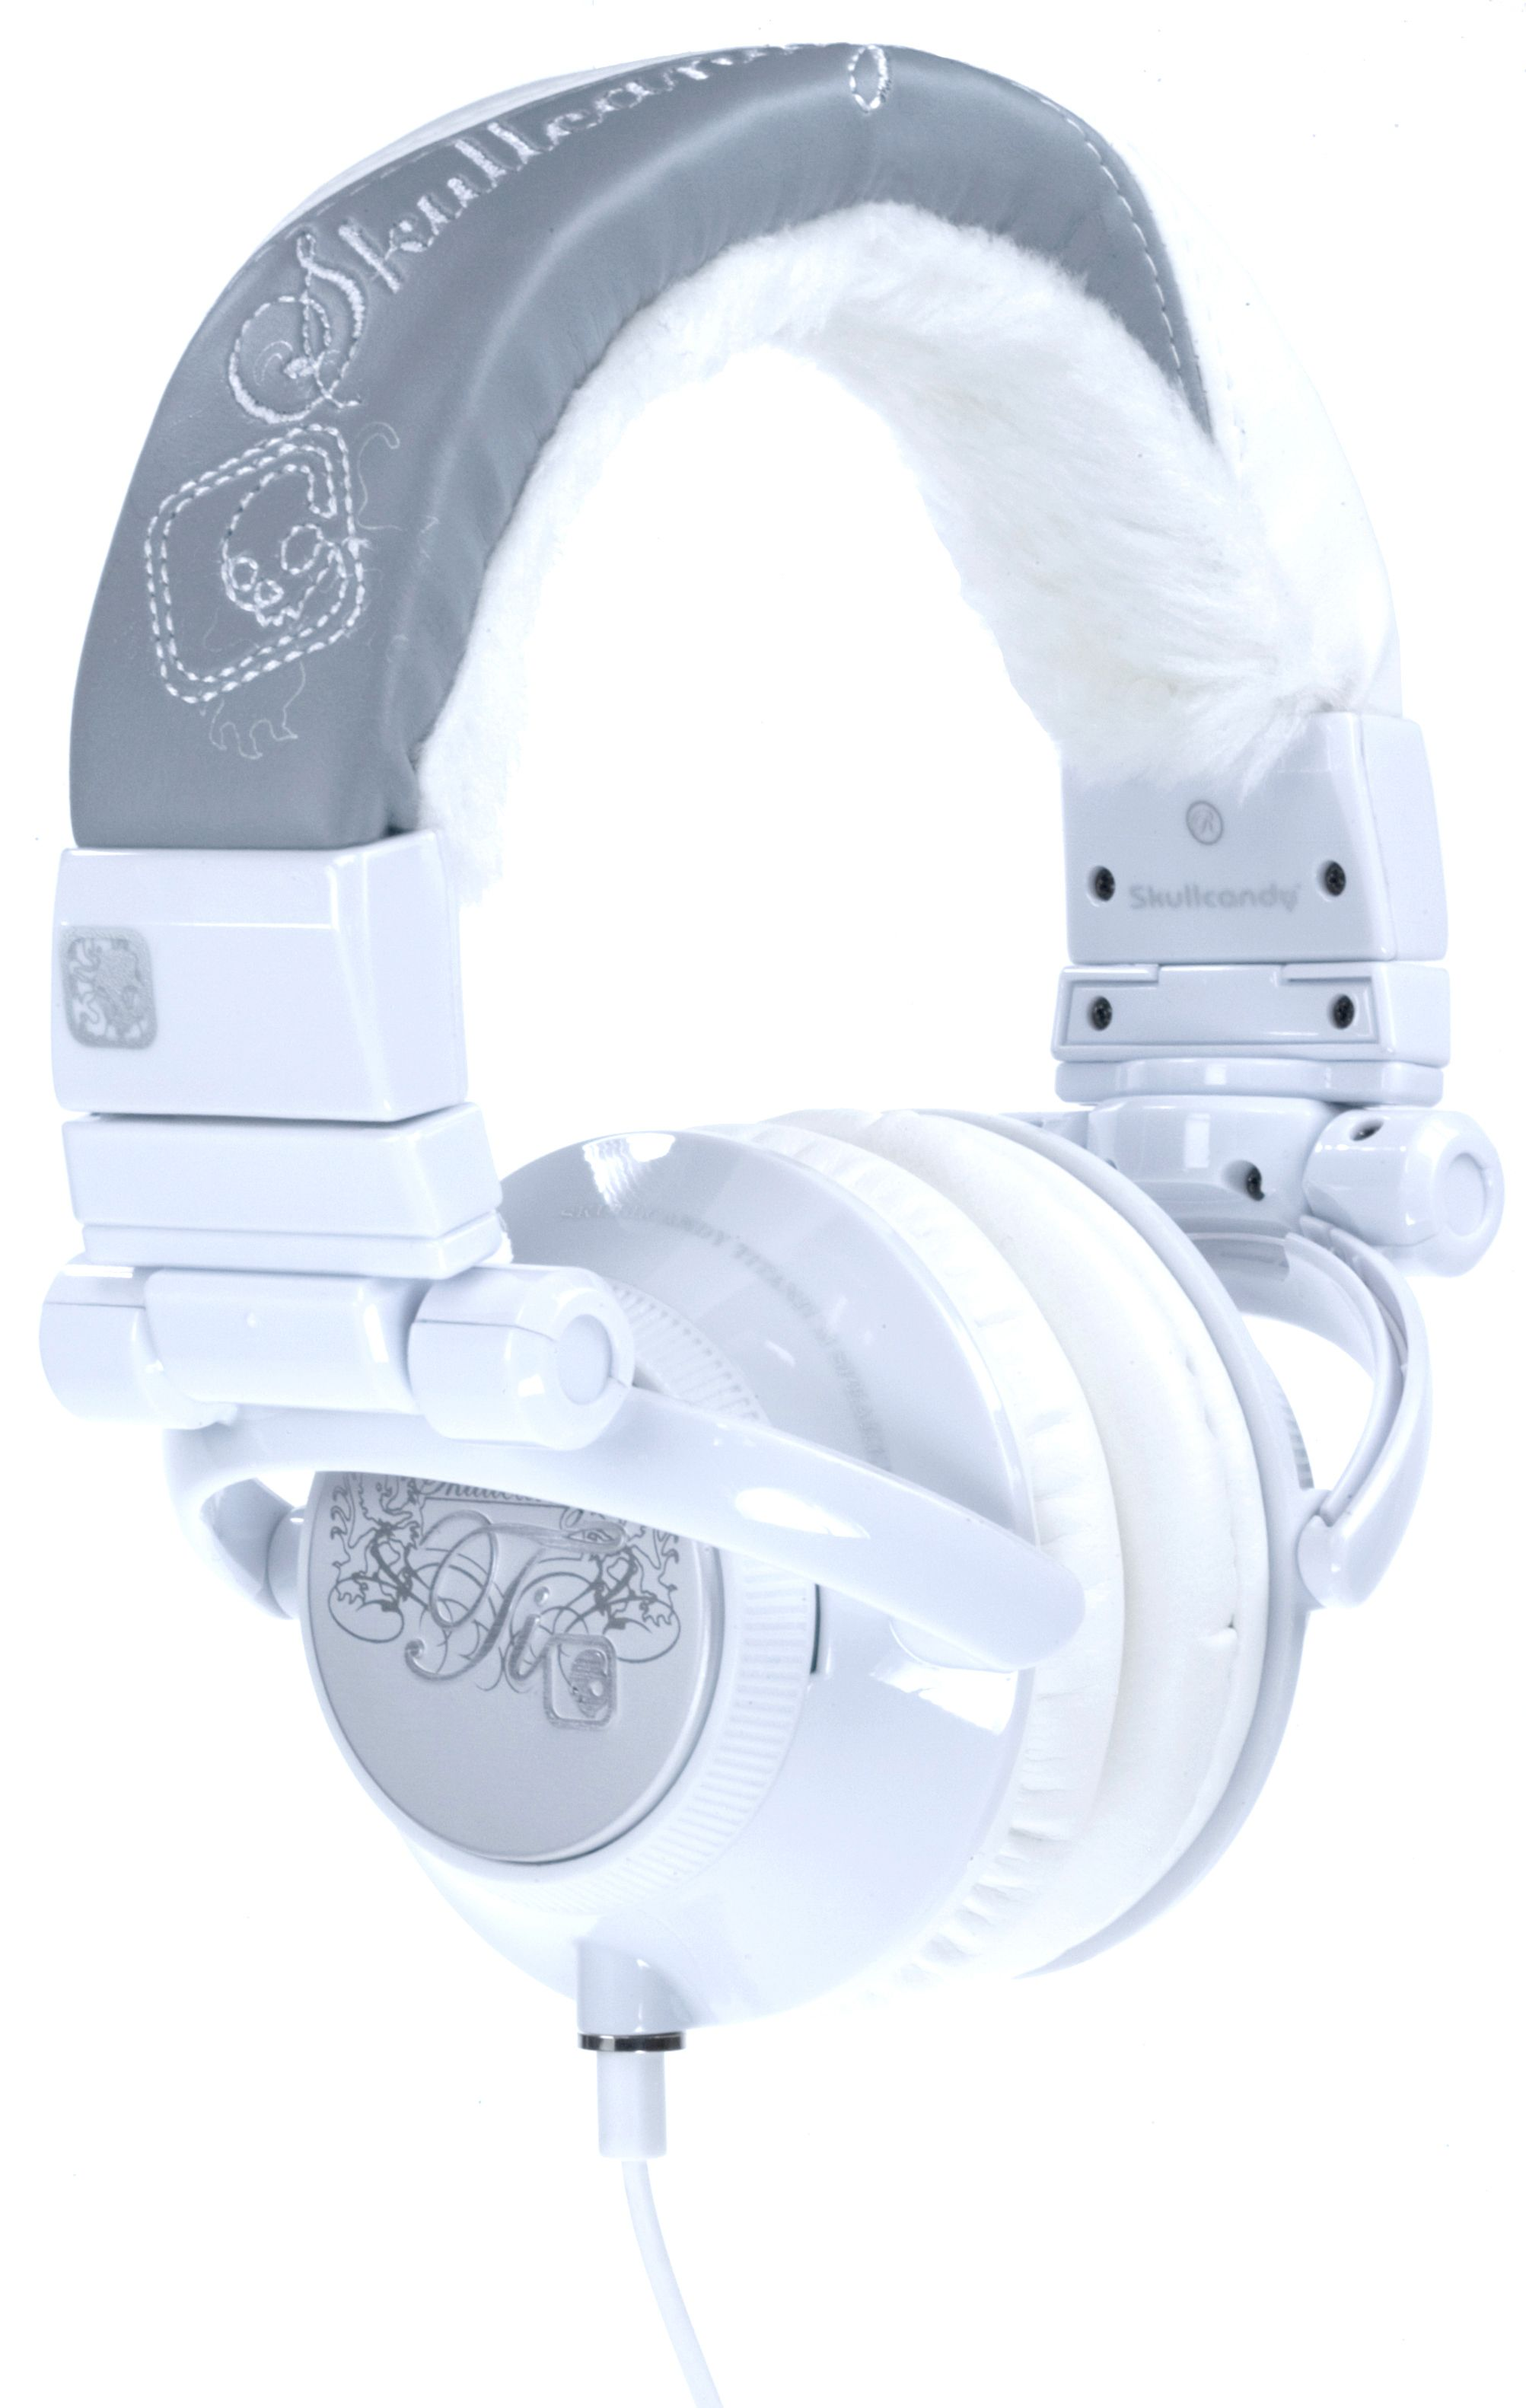 Skullcandy Headphones Prices www.skullcandyreviews.org skullcandy -headphones-prices.html 81301fdd5f